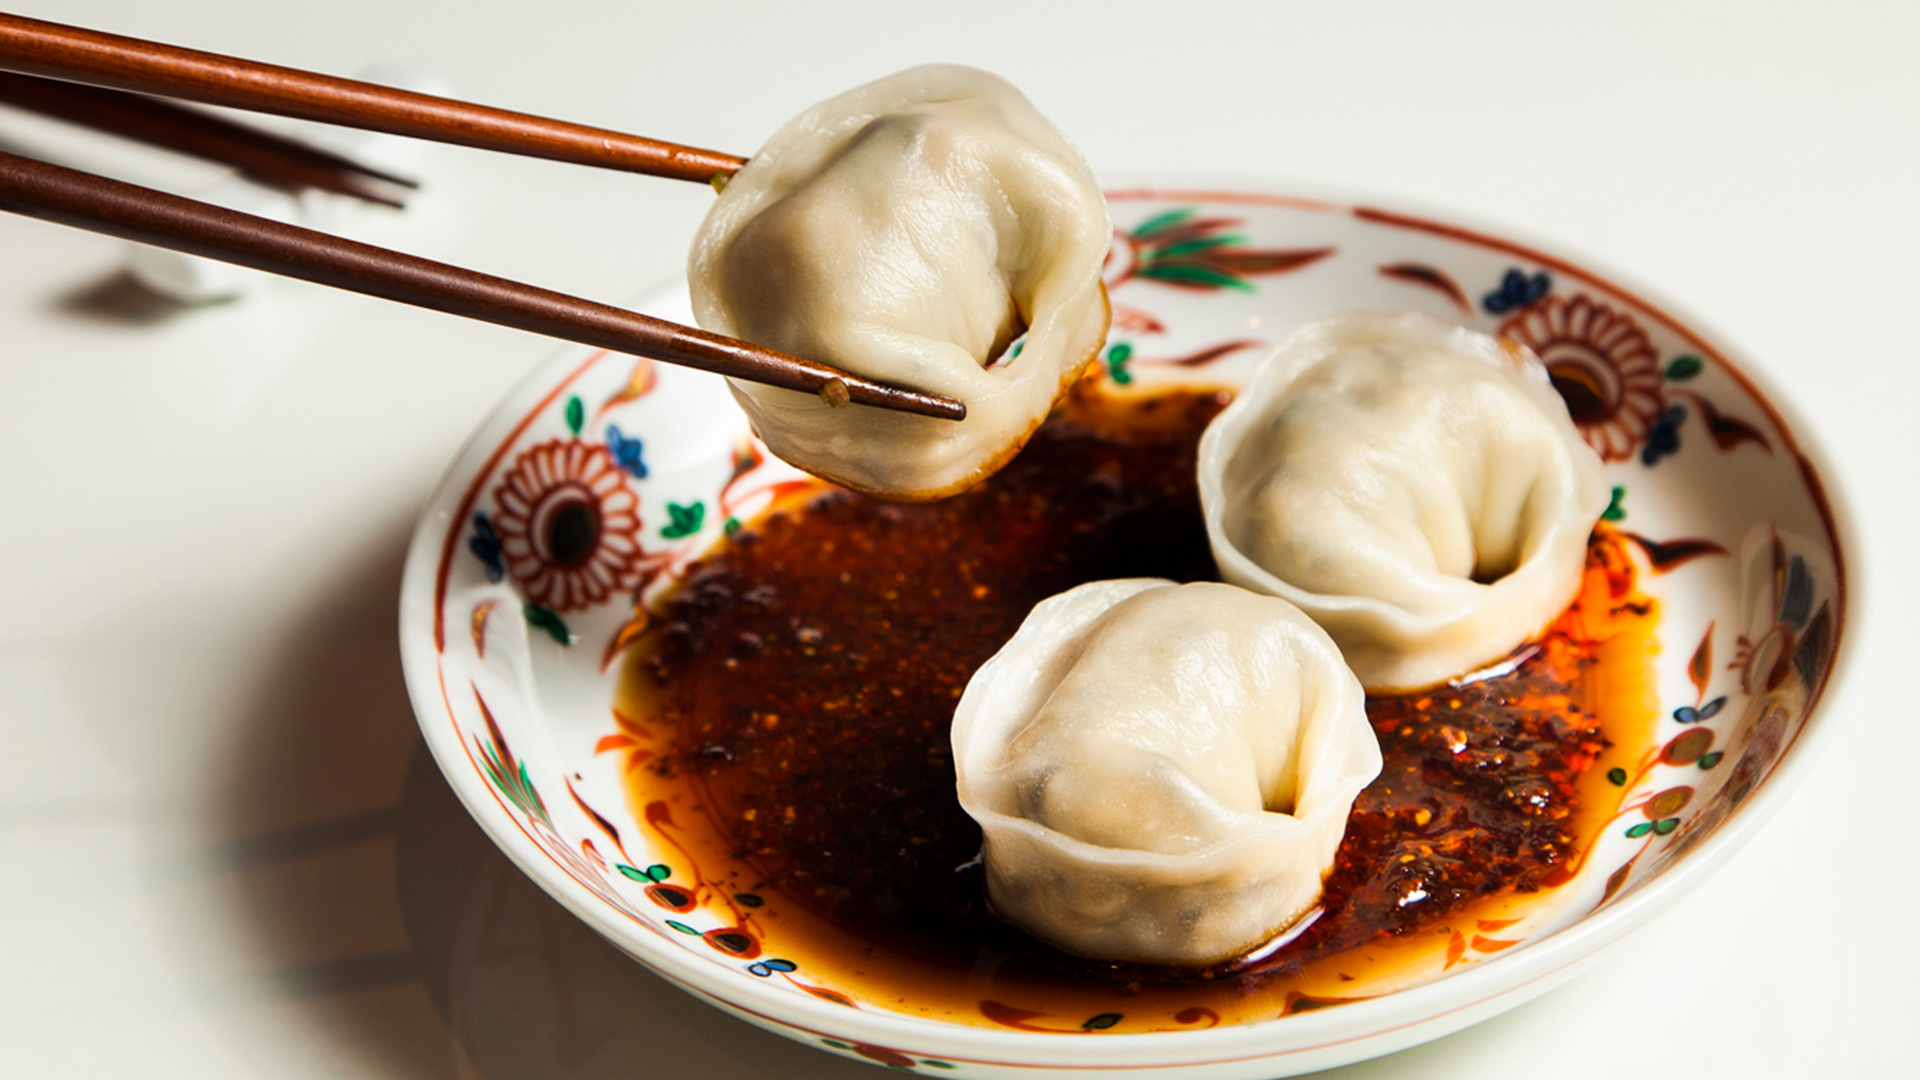 BAO's boiled mushroom dumplings with red chilli oil